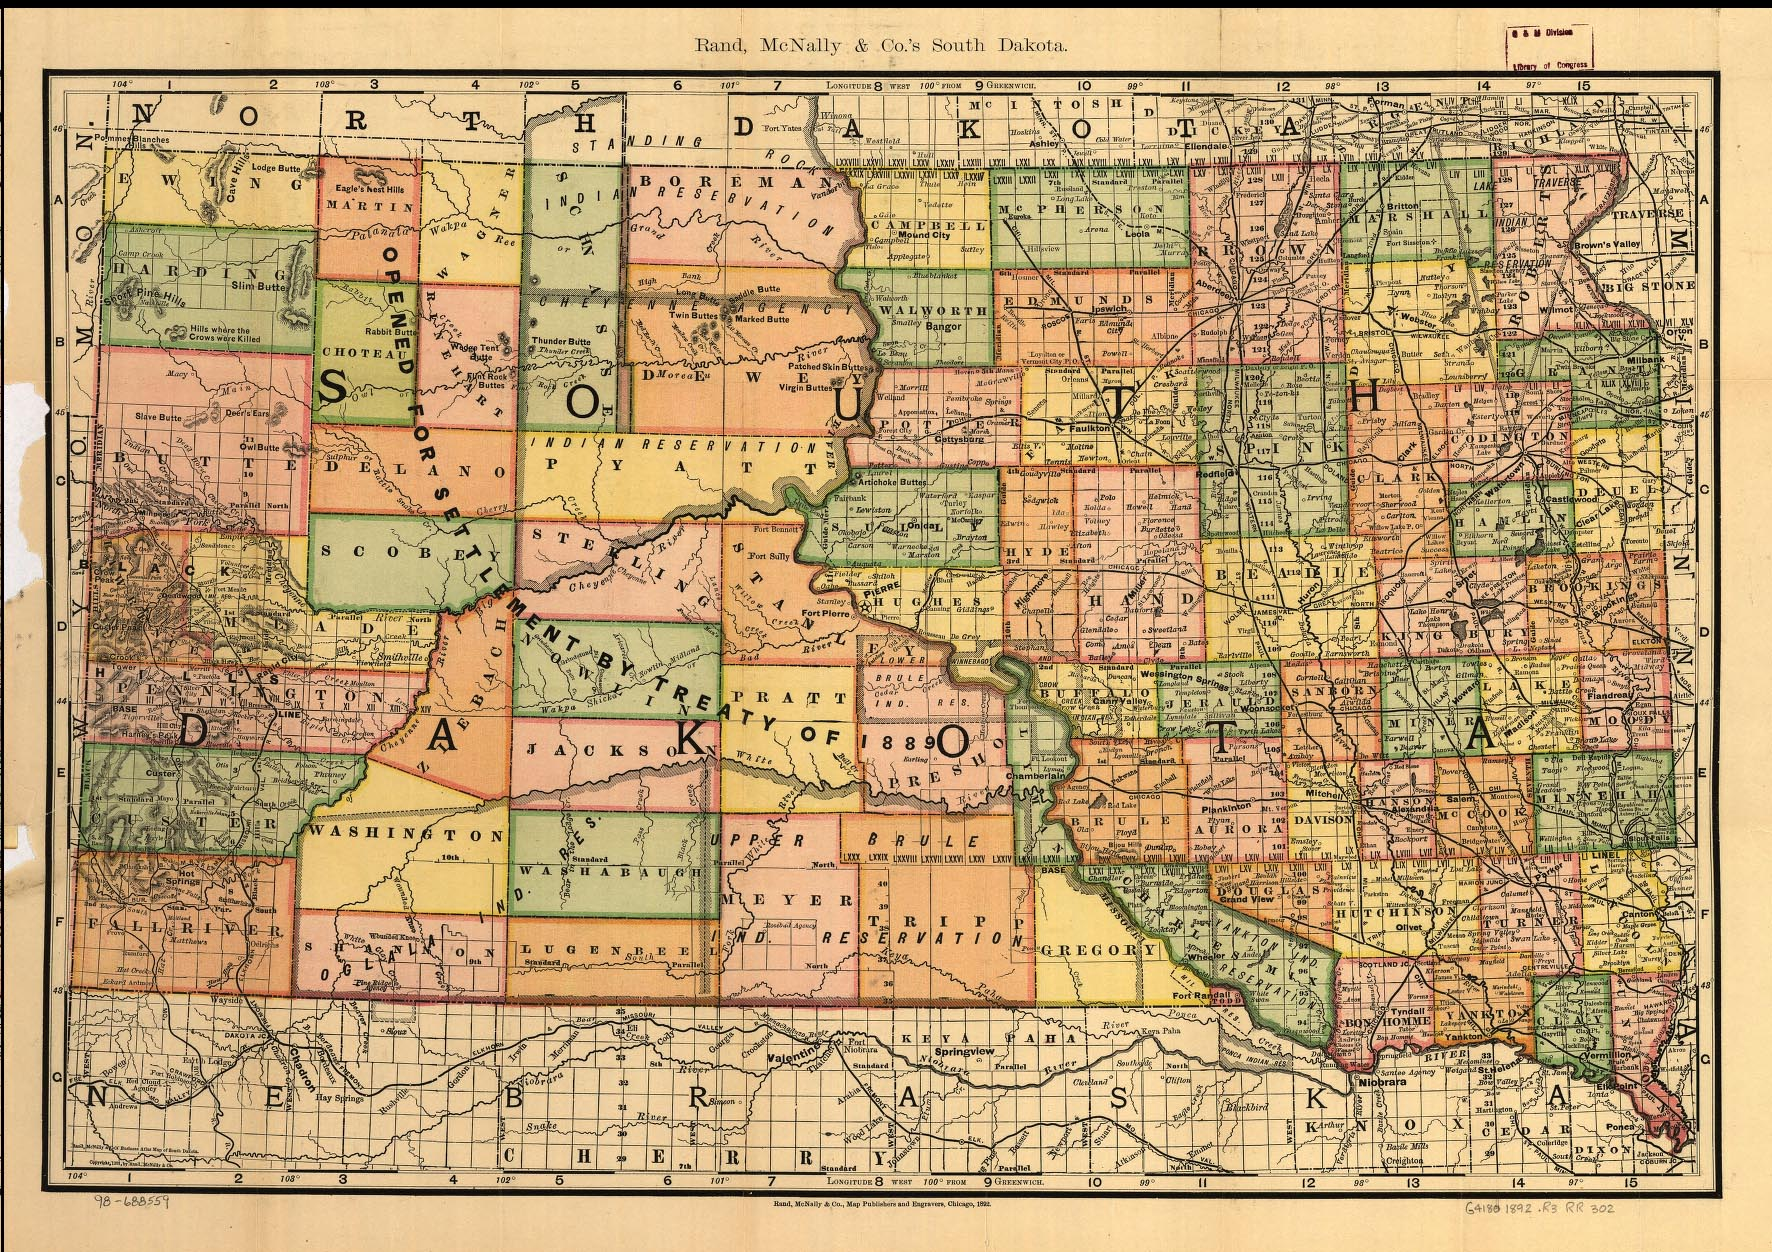 South Dakota Maps South Dakota Digital Map Library Table of